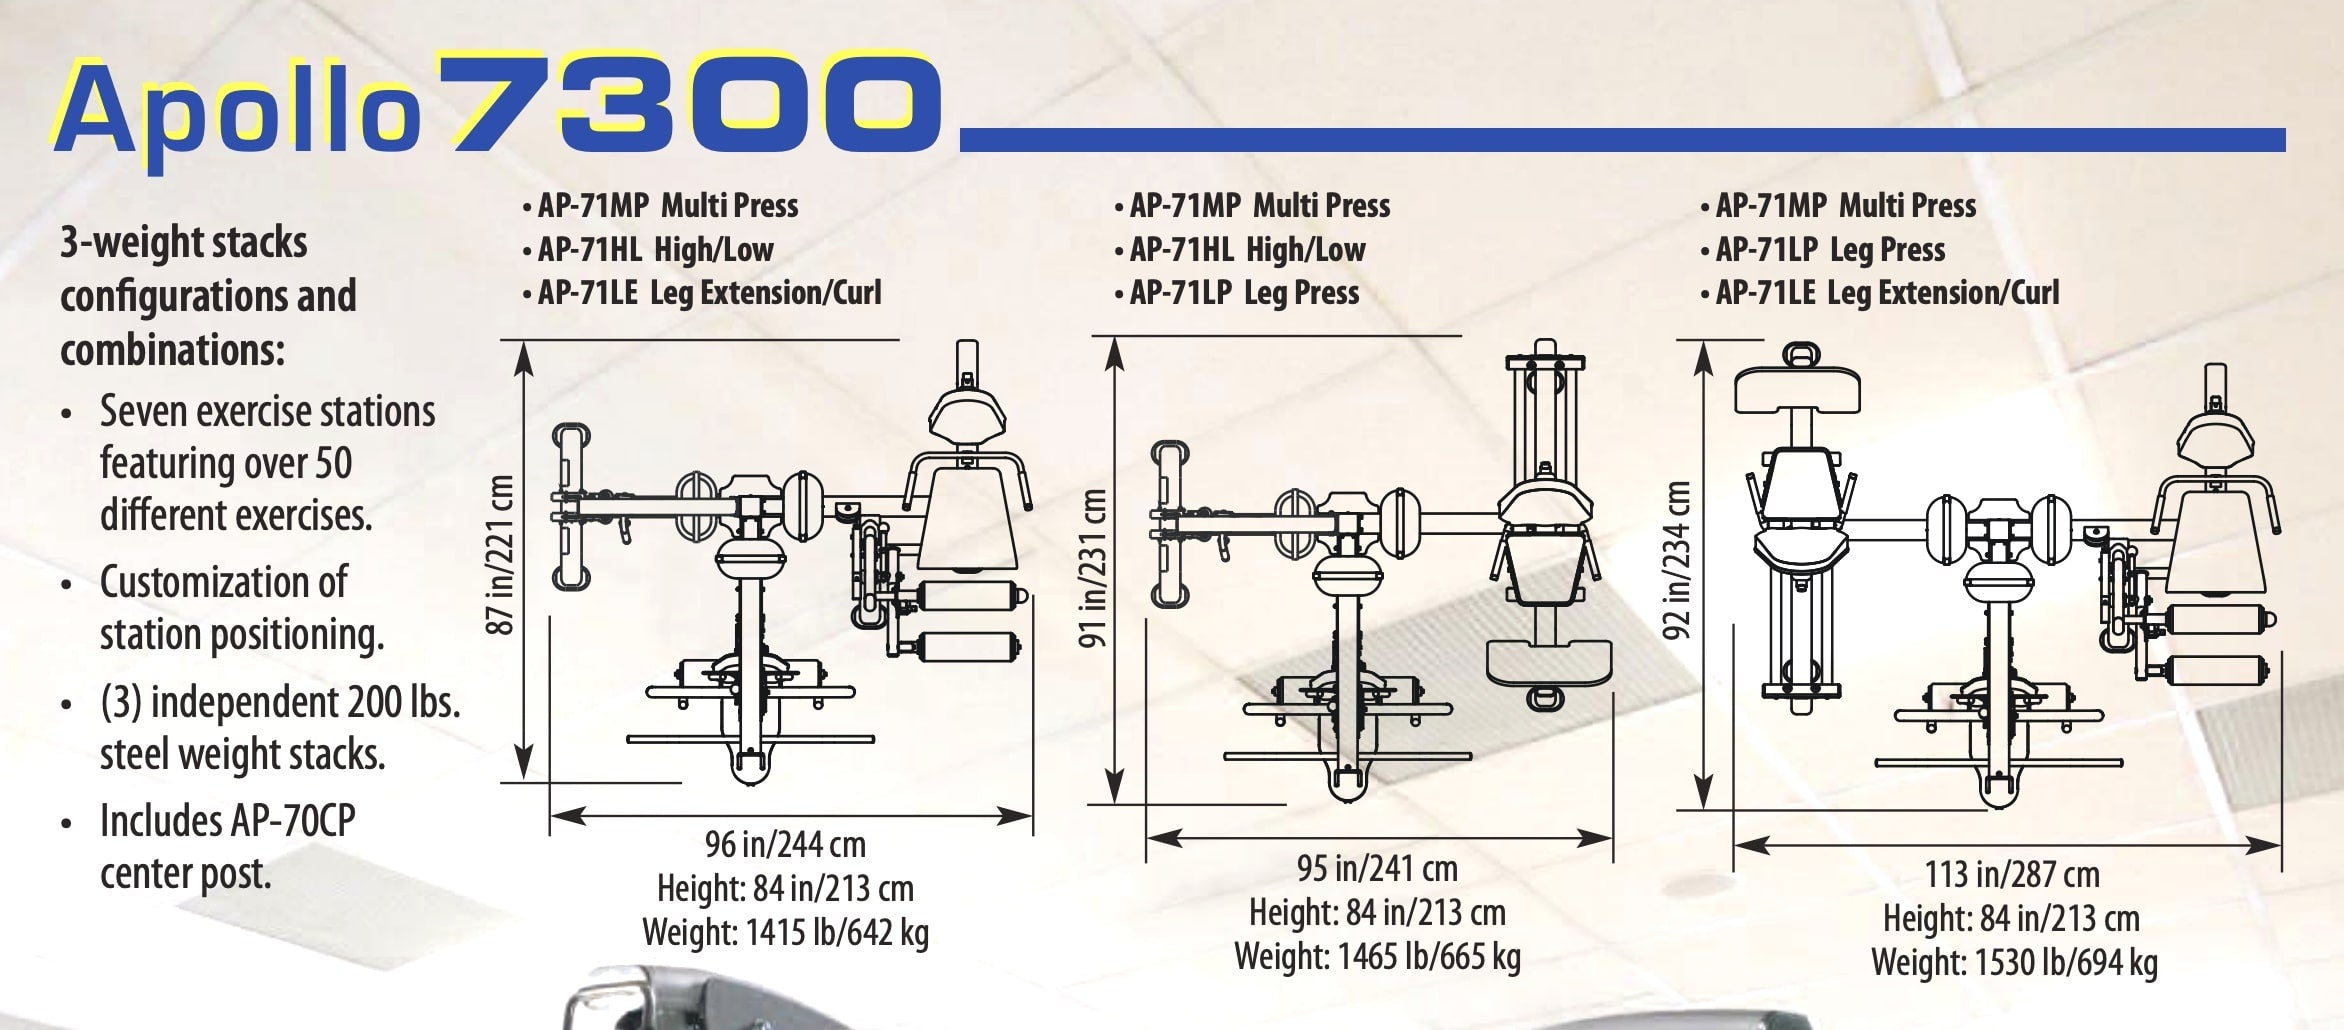 TuffStuff Apollo 7300 Multi Stack Gym Configurations